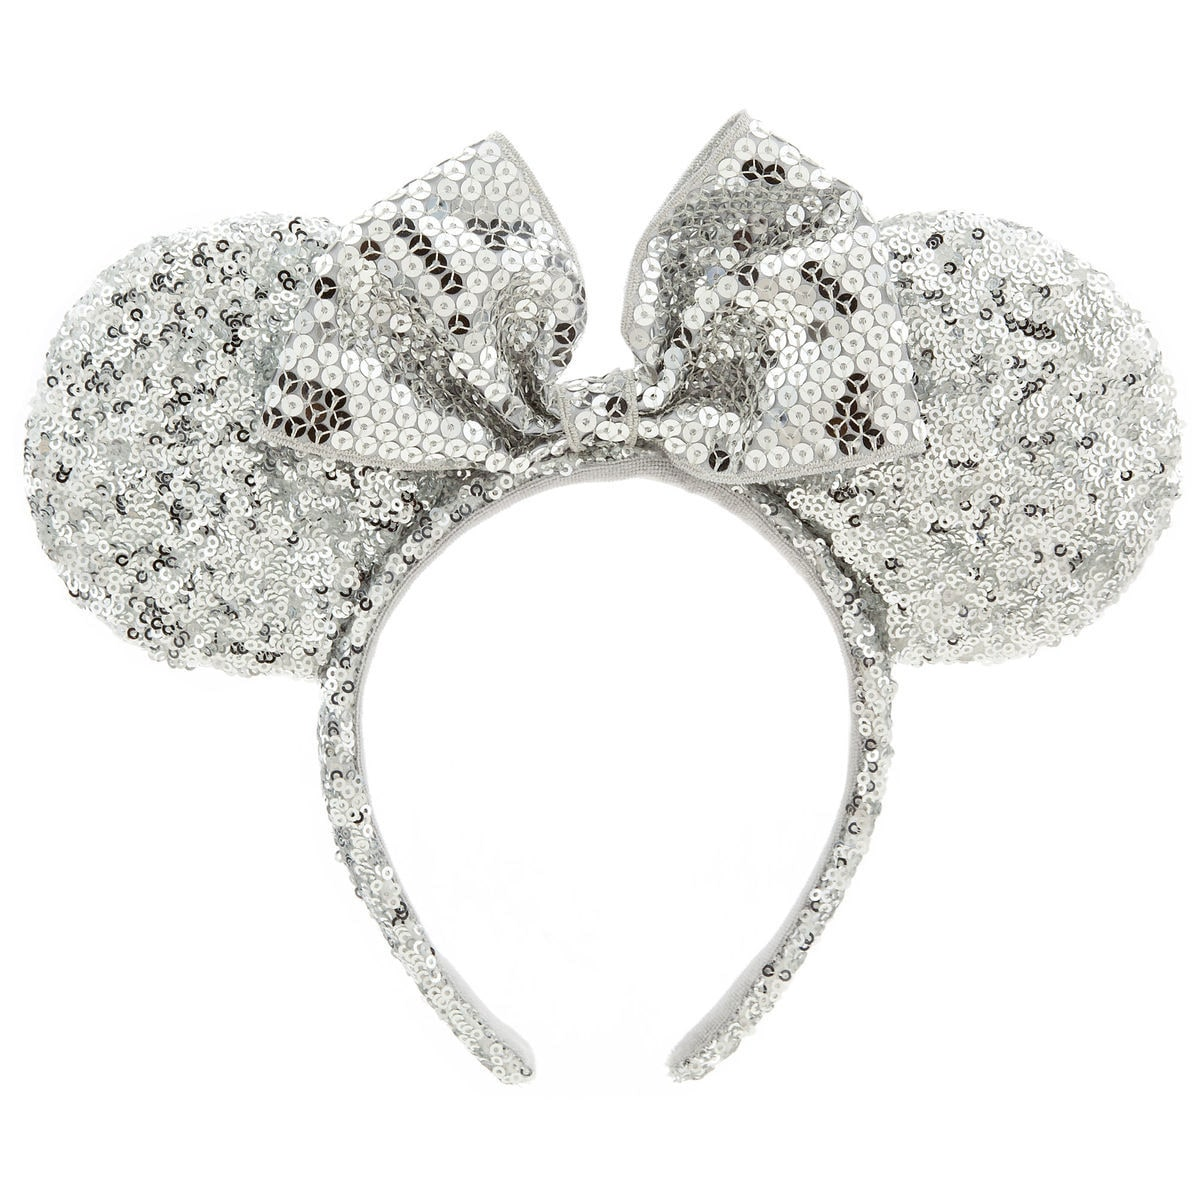 Product Image of Minnie Mouse Ear Headband - Silver Sequins   1 822c2a9bf66